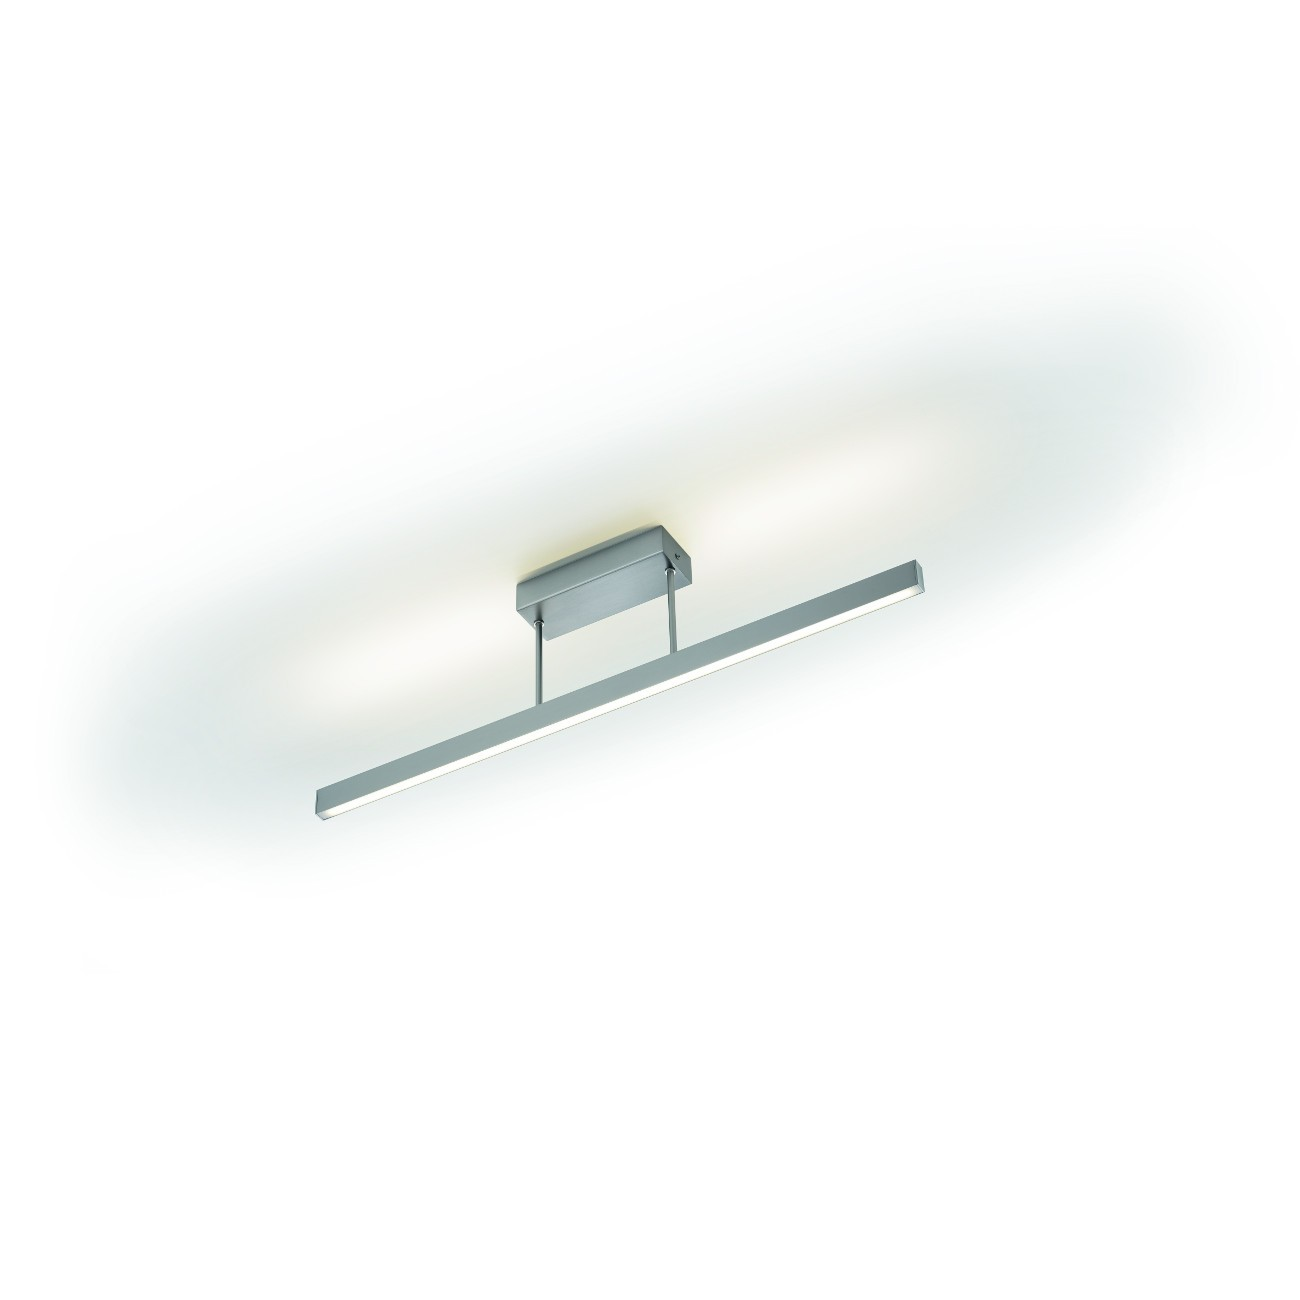 Moderne LED-Deckenleuchte in Nickel matt, dimmbar KNAPSTEIN 91.337